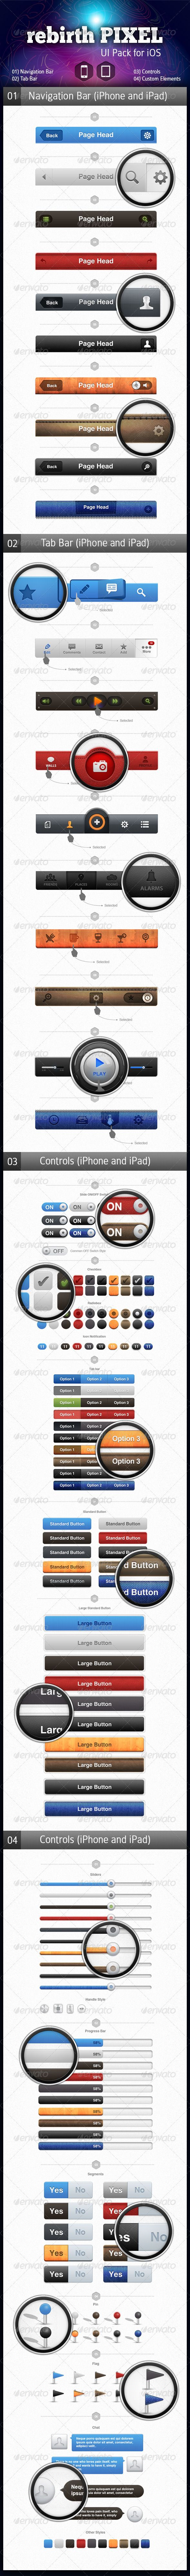 UI Pack for iOS by rebirthPIXEL - User Interfaces Web Elements